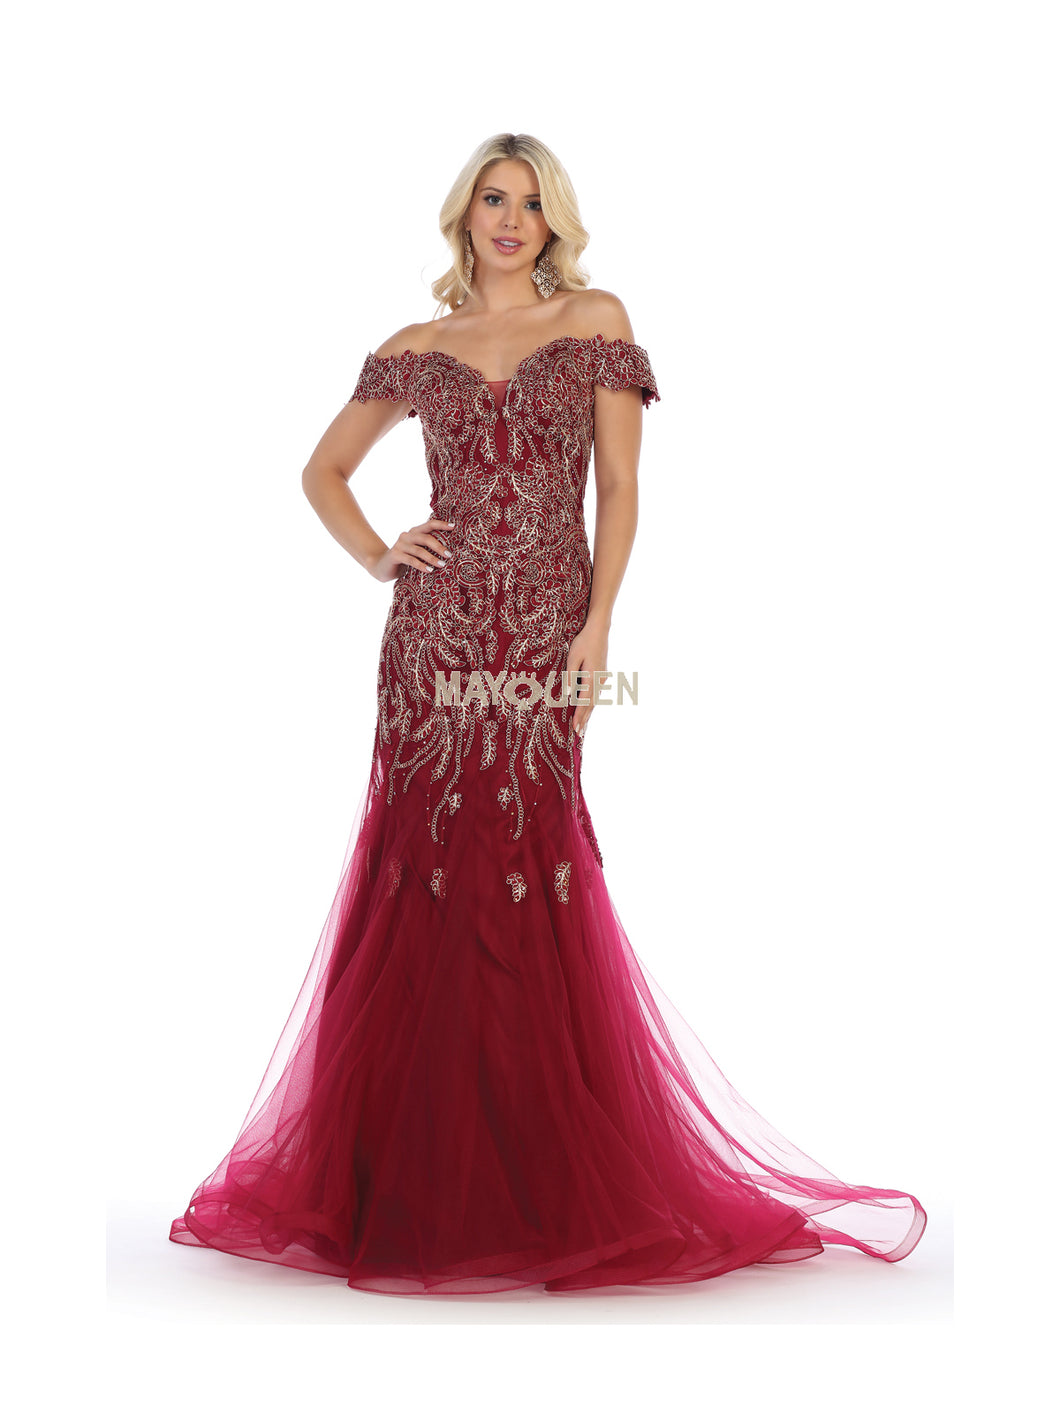 MQ 7705 - Off the Shoulder Embroidered Fit & Flare Sweetheart Neck & Tulle Skirt with Train - Diggz Prom